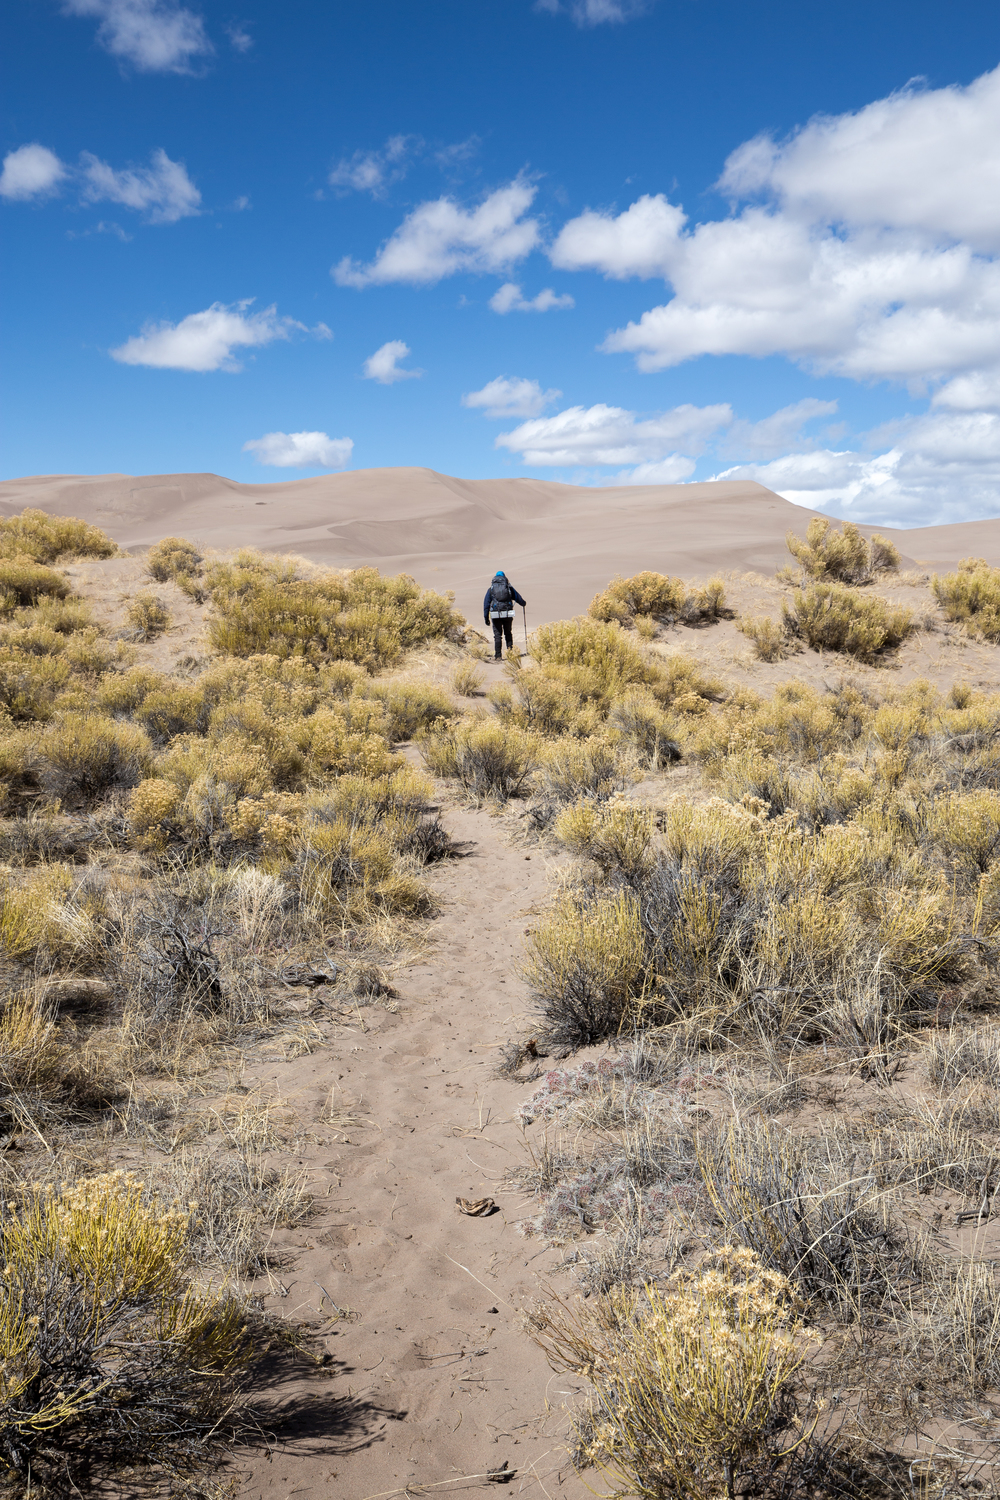 the national parks girl_great sand dunes national park_great sand dunes_hiking_backcountry hike_canon6d.JPG